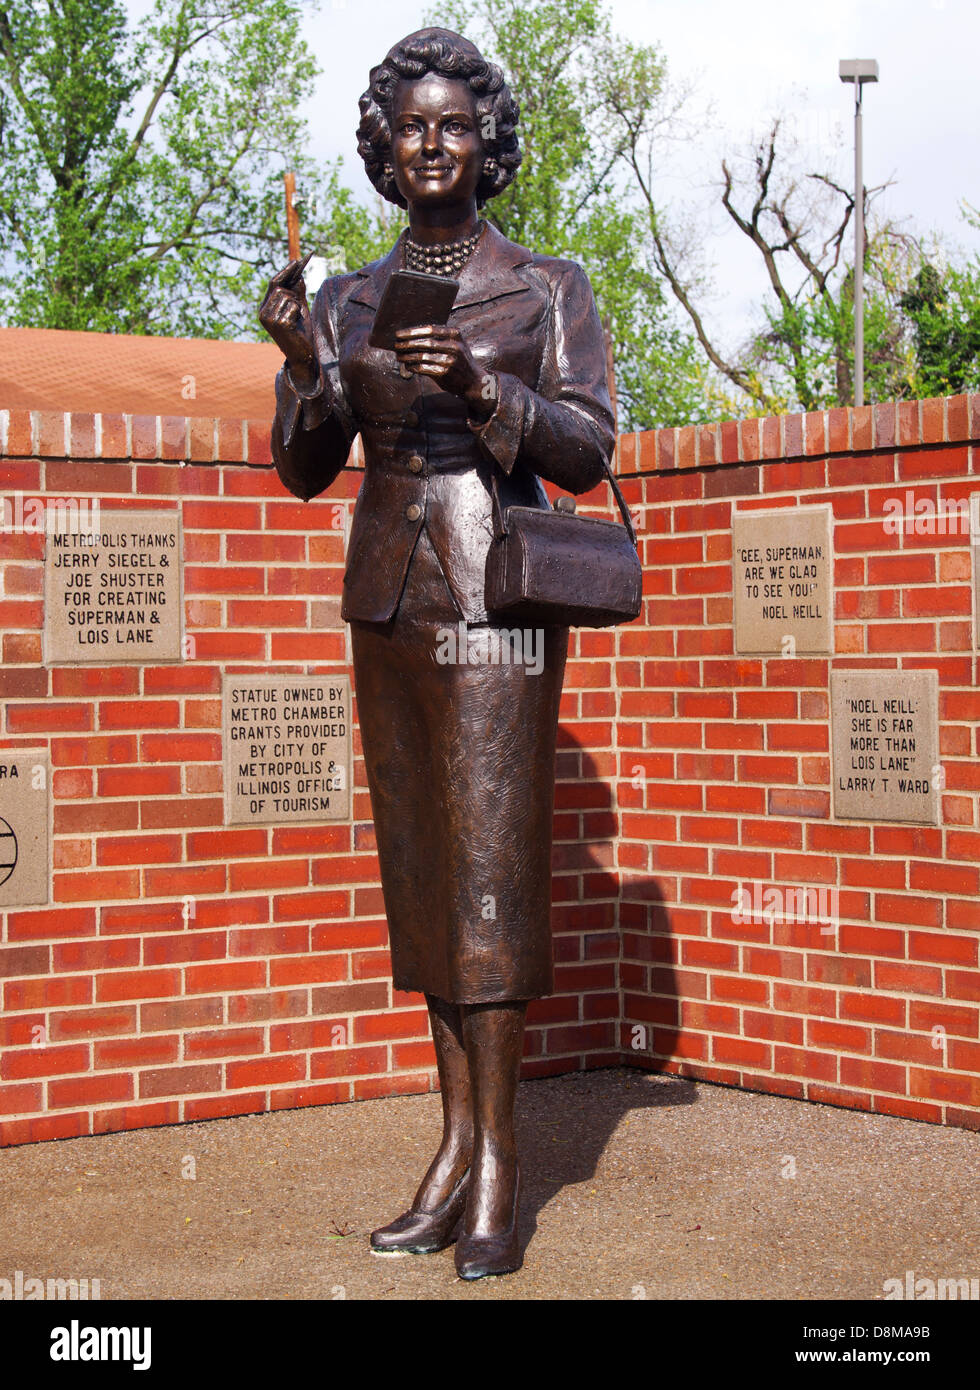 Metropolis Illinois Home of Superman Lois Lane Statue - Stock Image